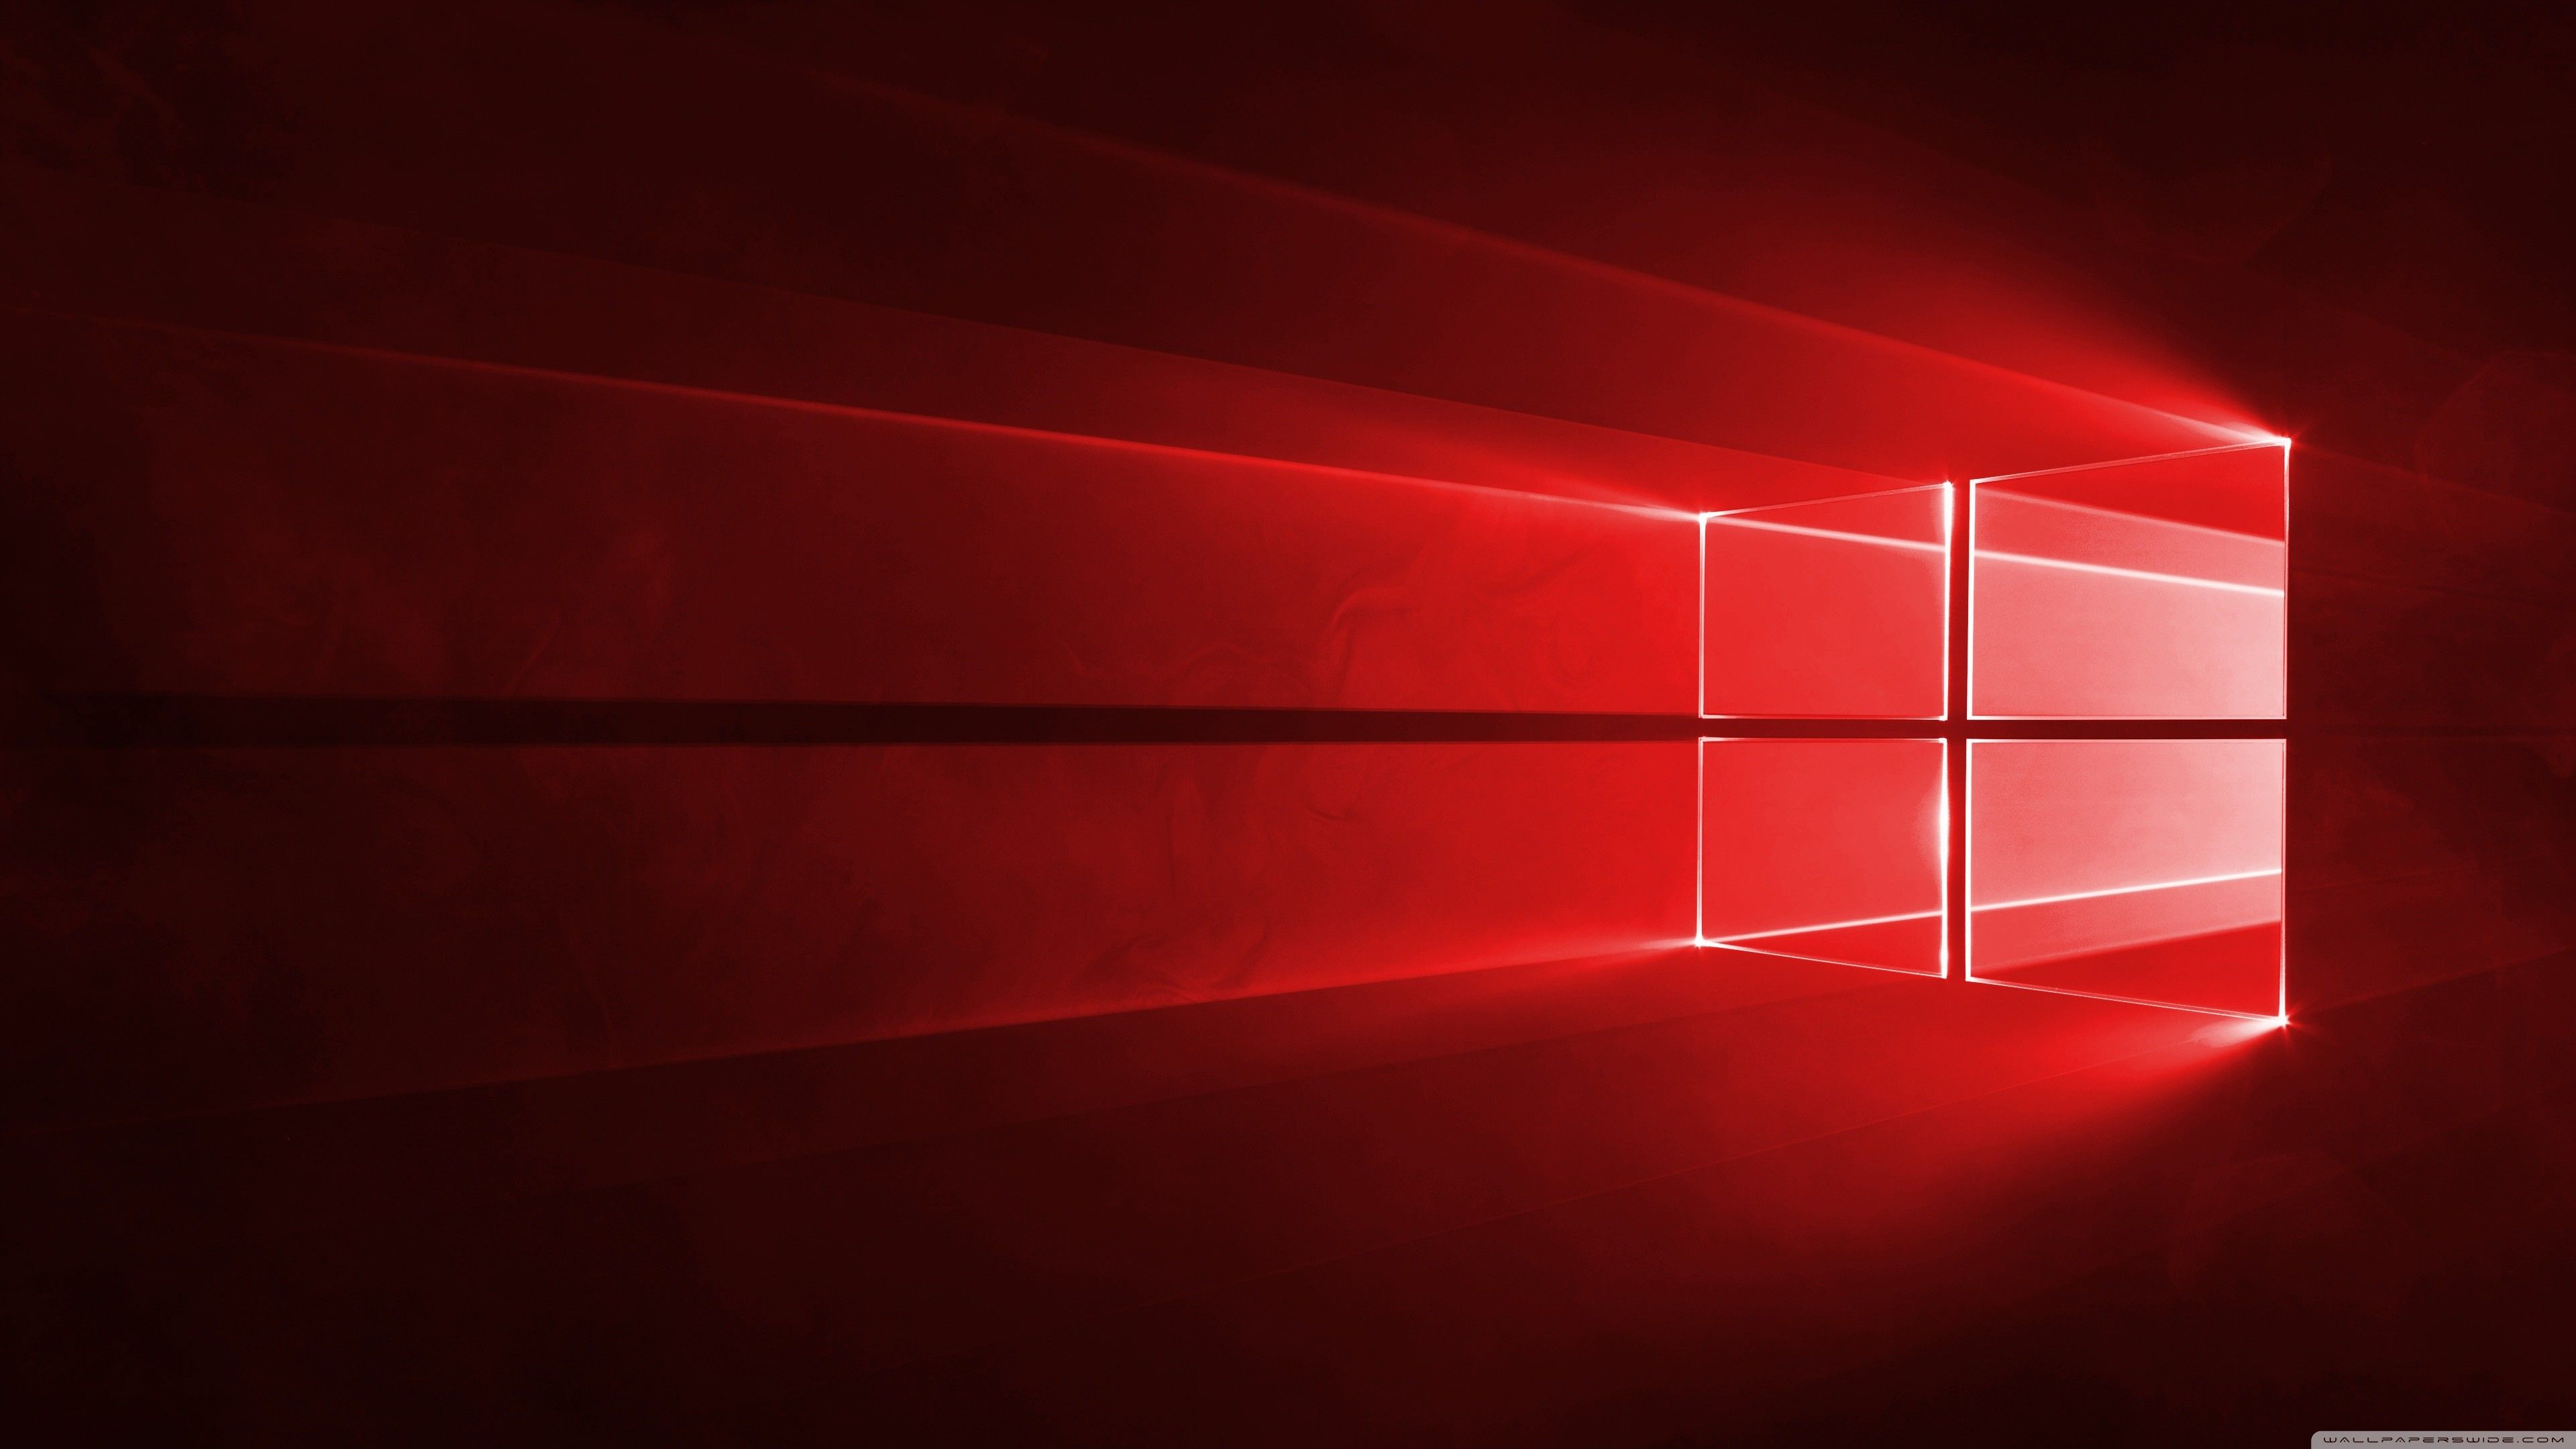 Windows 10 Latest Wallpaper Wallpaper Windows 10 Windows Wallpaper Background Hd Wallpaper